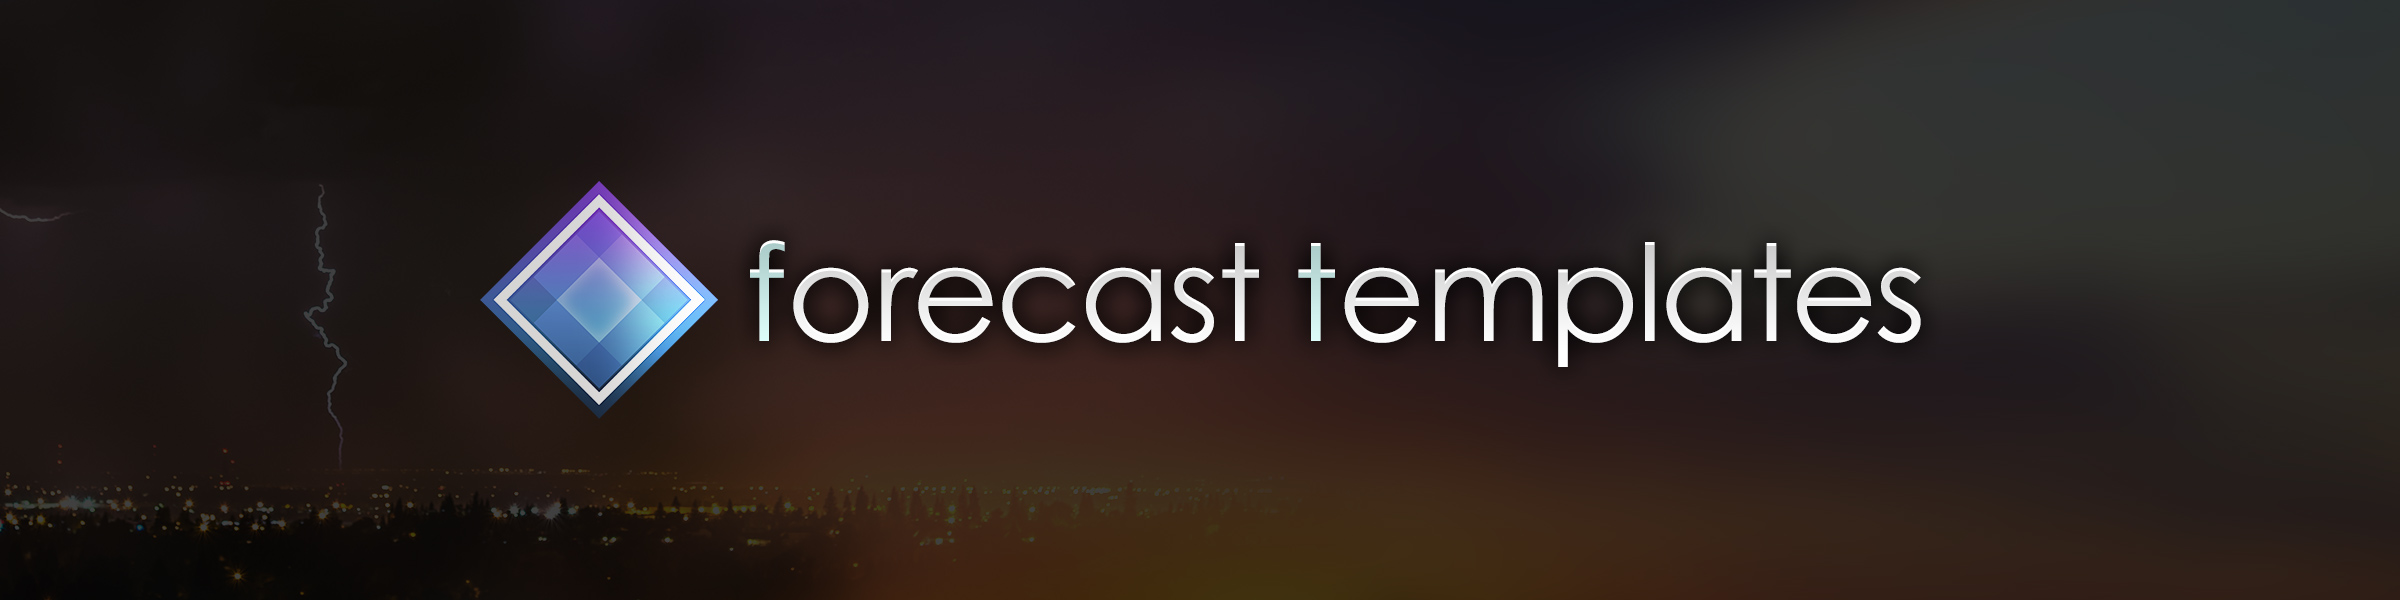 forecast templates weather forecast graphics metgraphics net